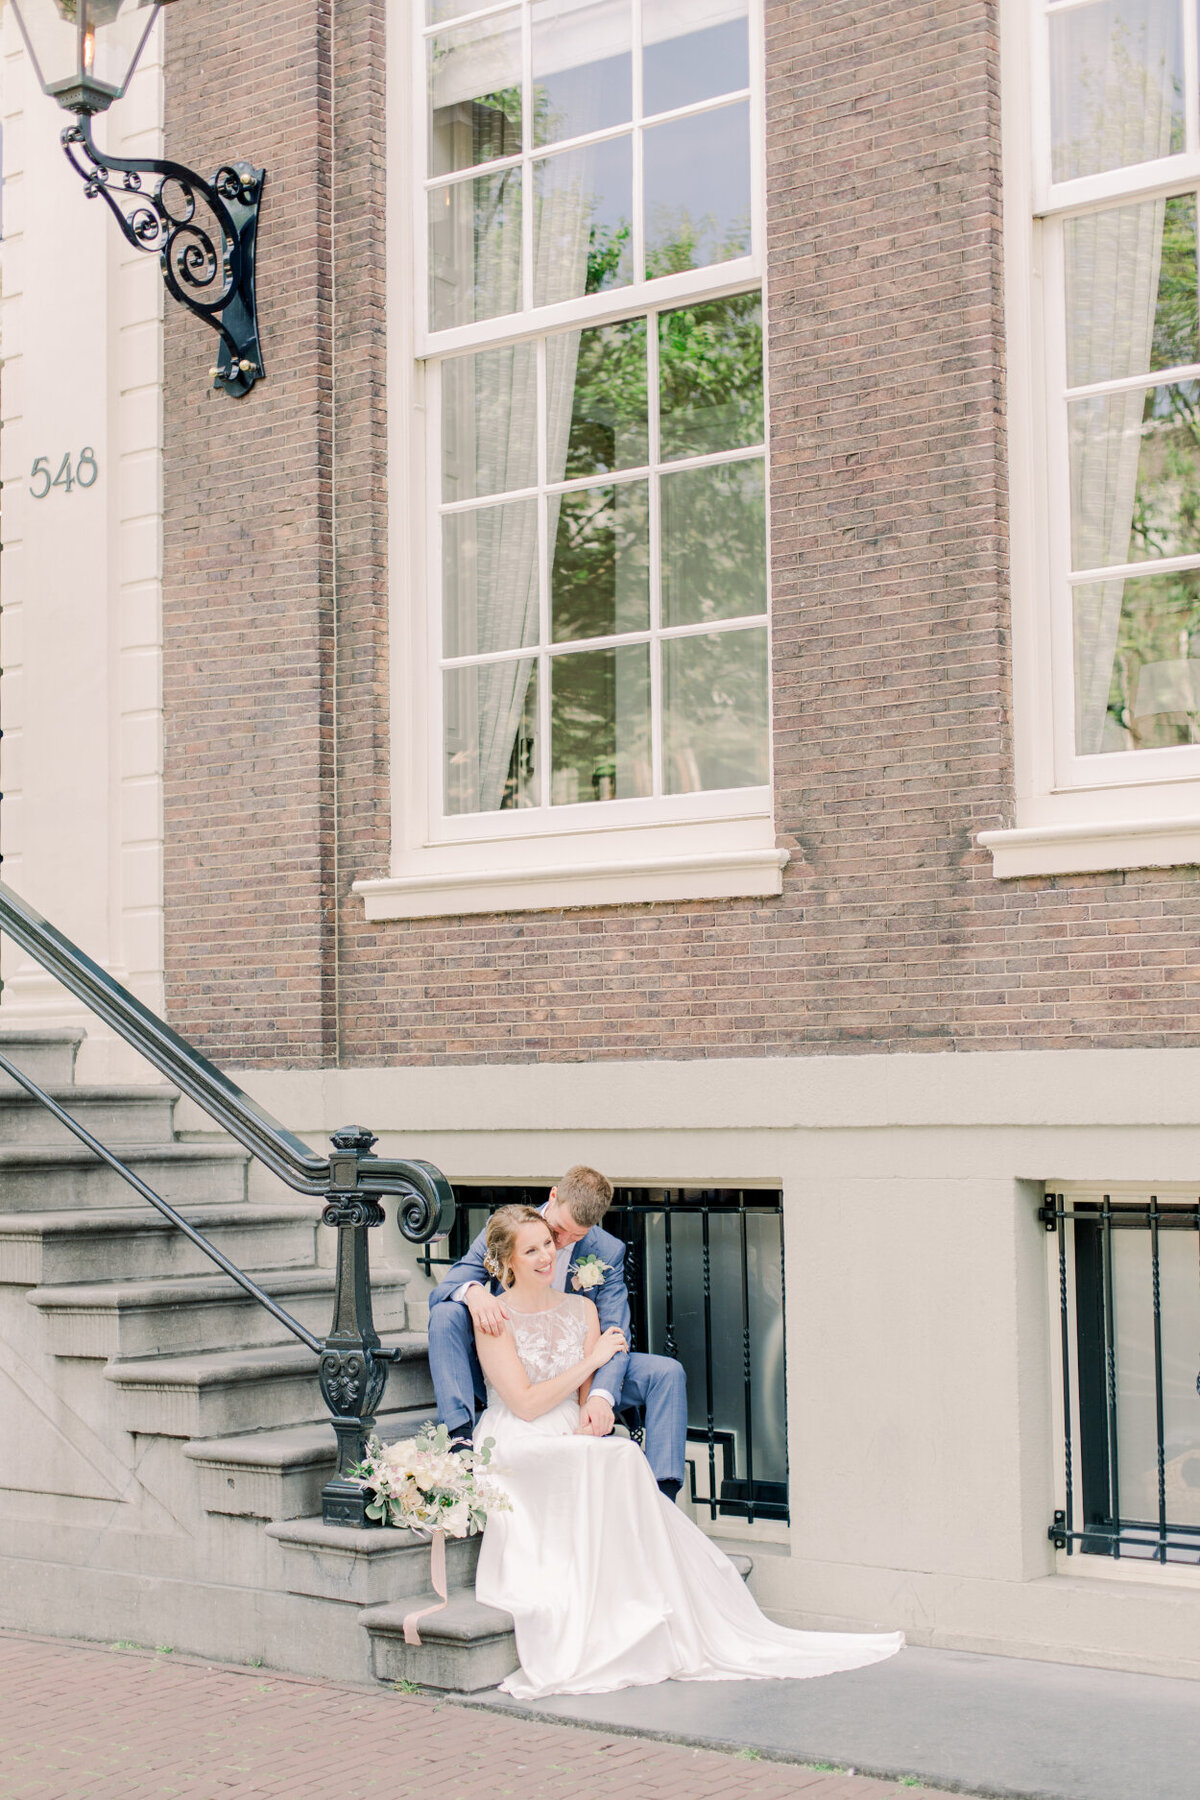 Wedding portrait of the bride and groom in the streets of Amsterdam for their city elopement for a photoshoot organized by Lovely & Planned